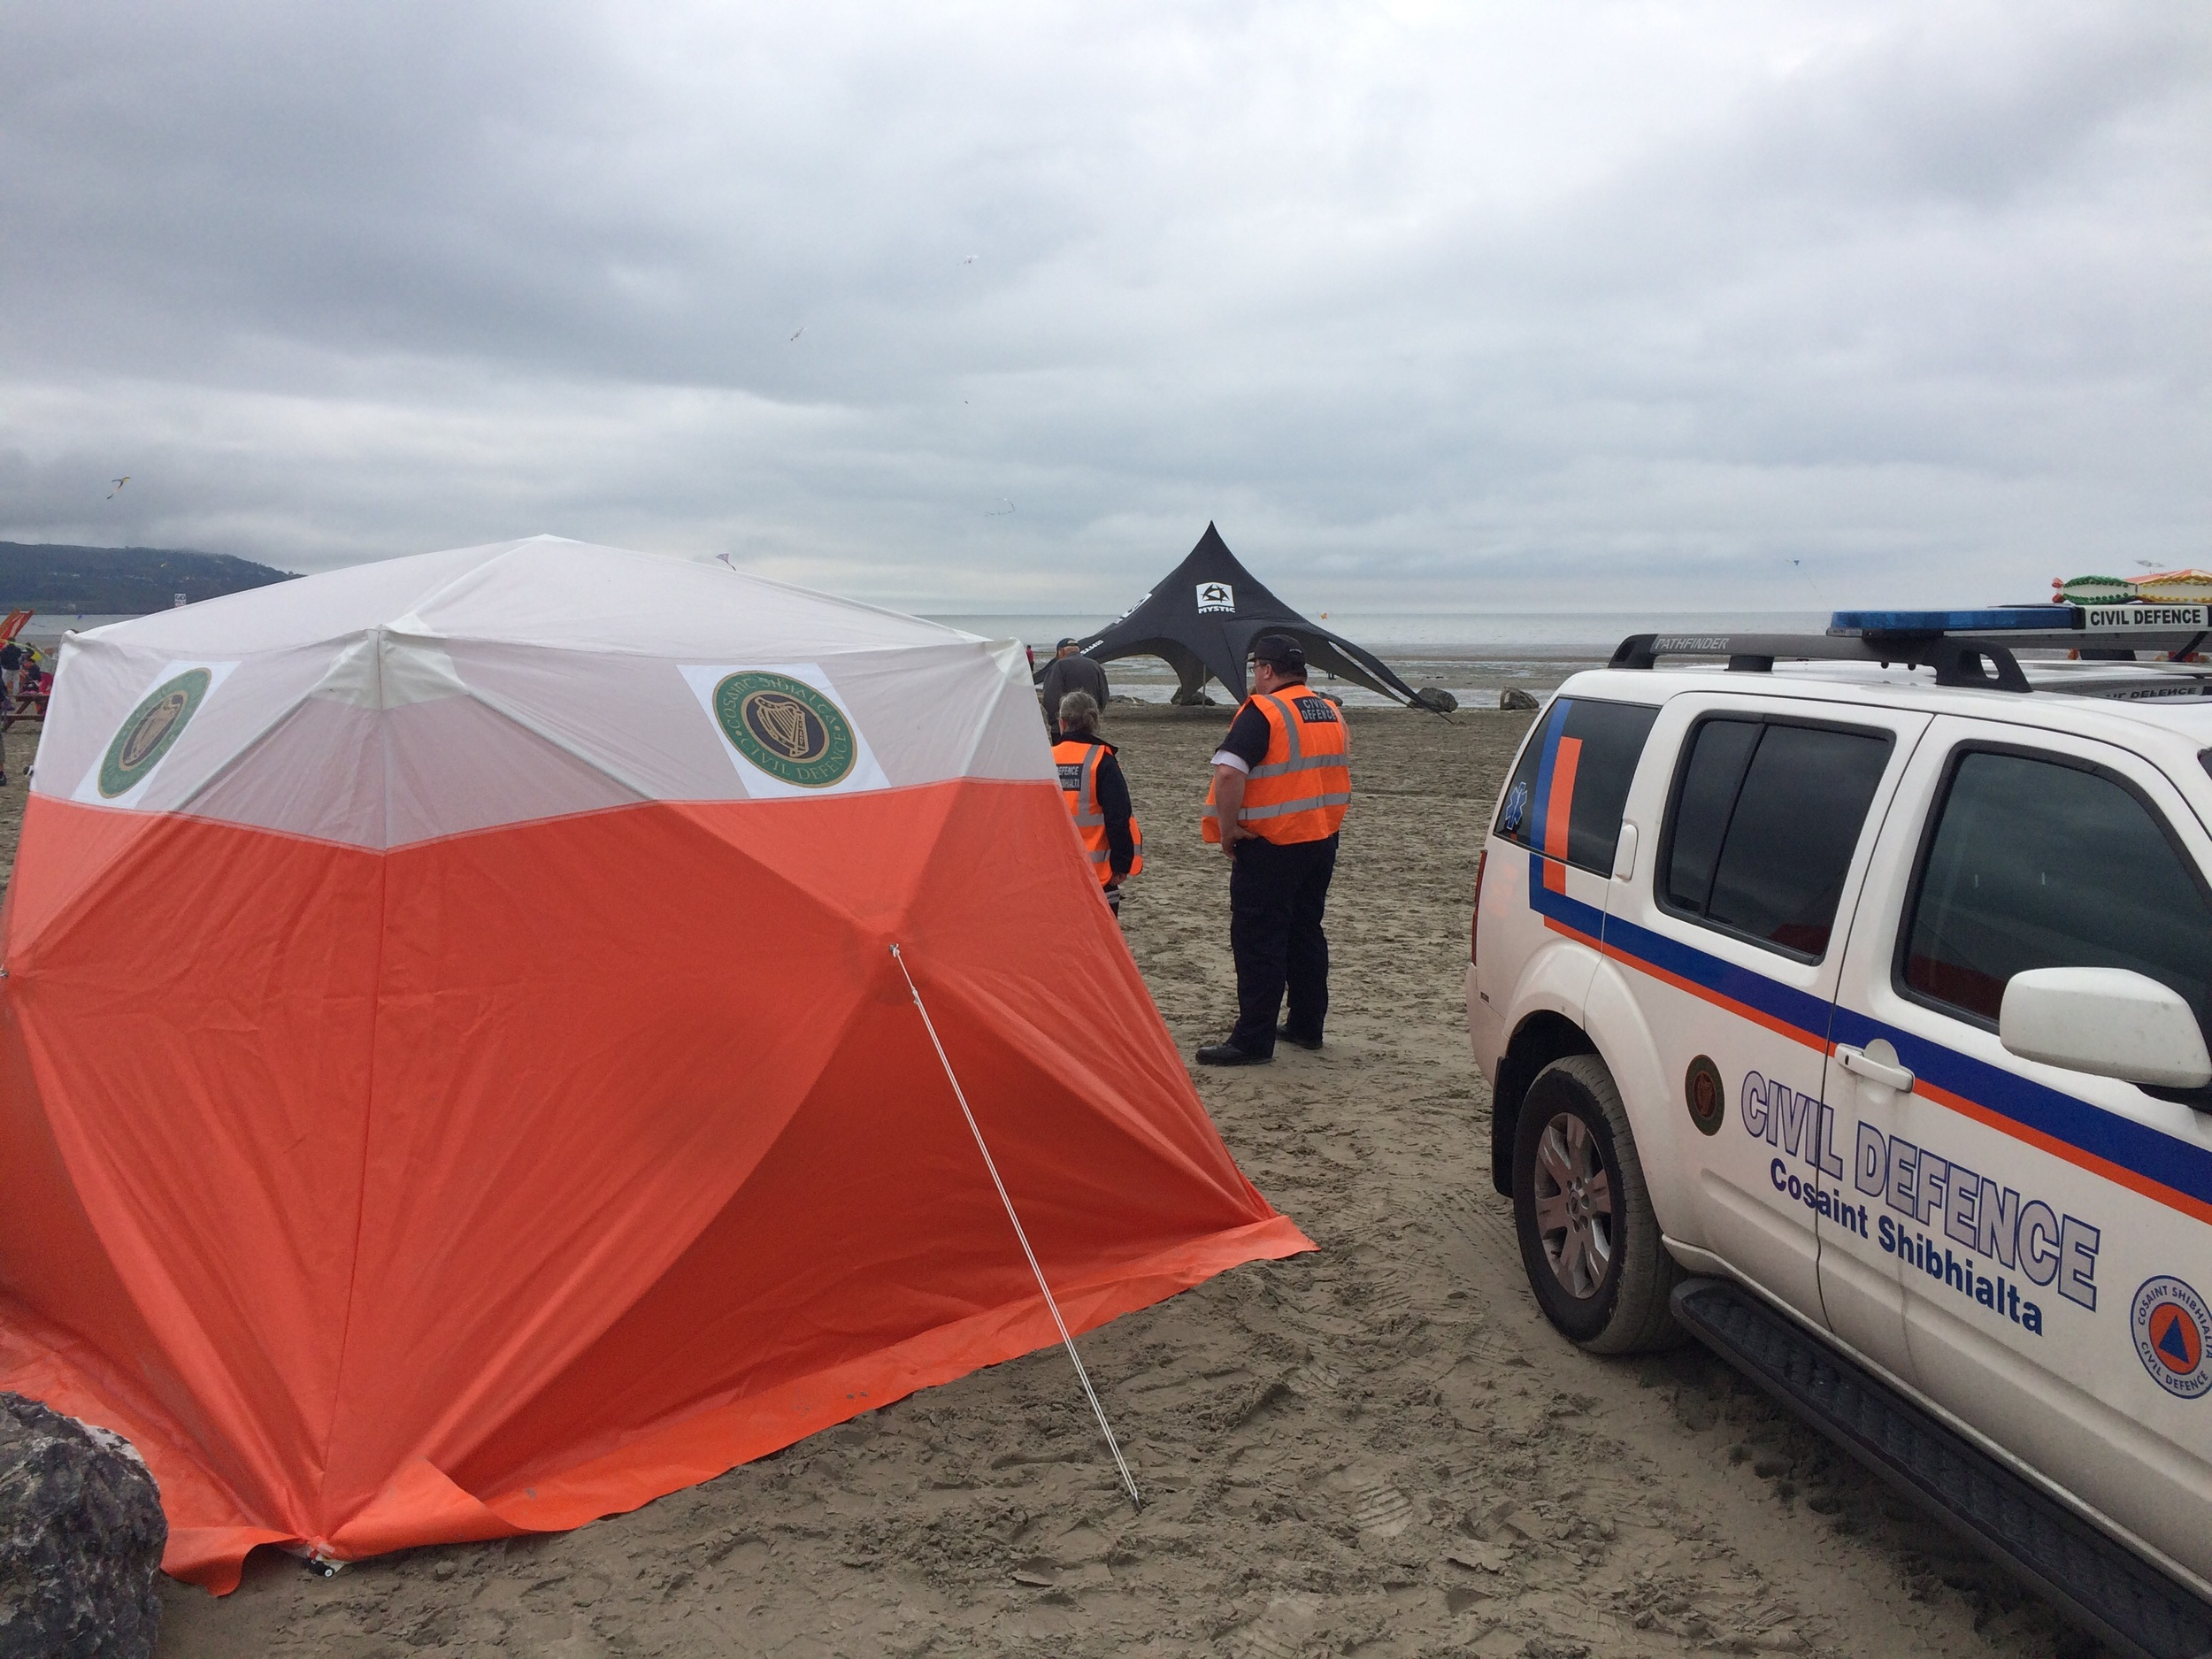 Pop up First Aid Tent